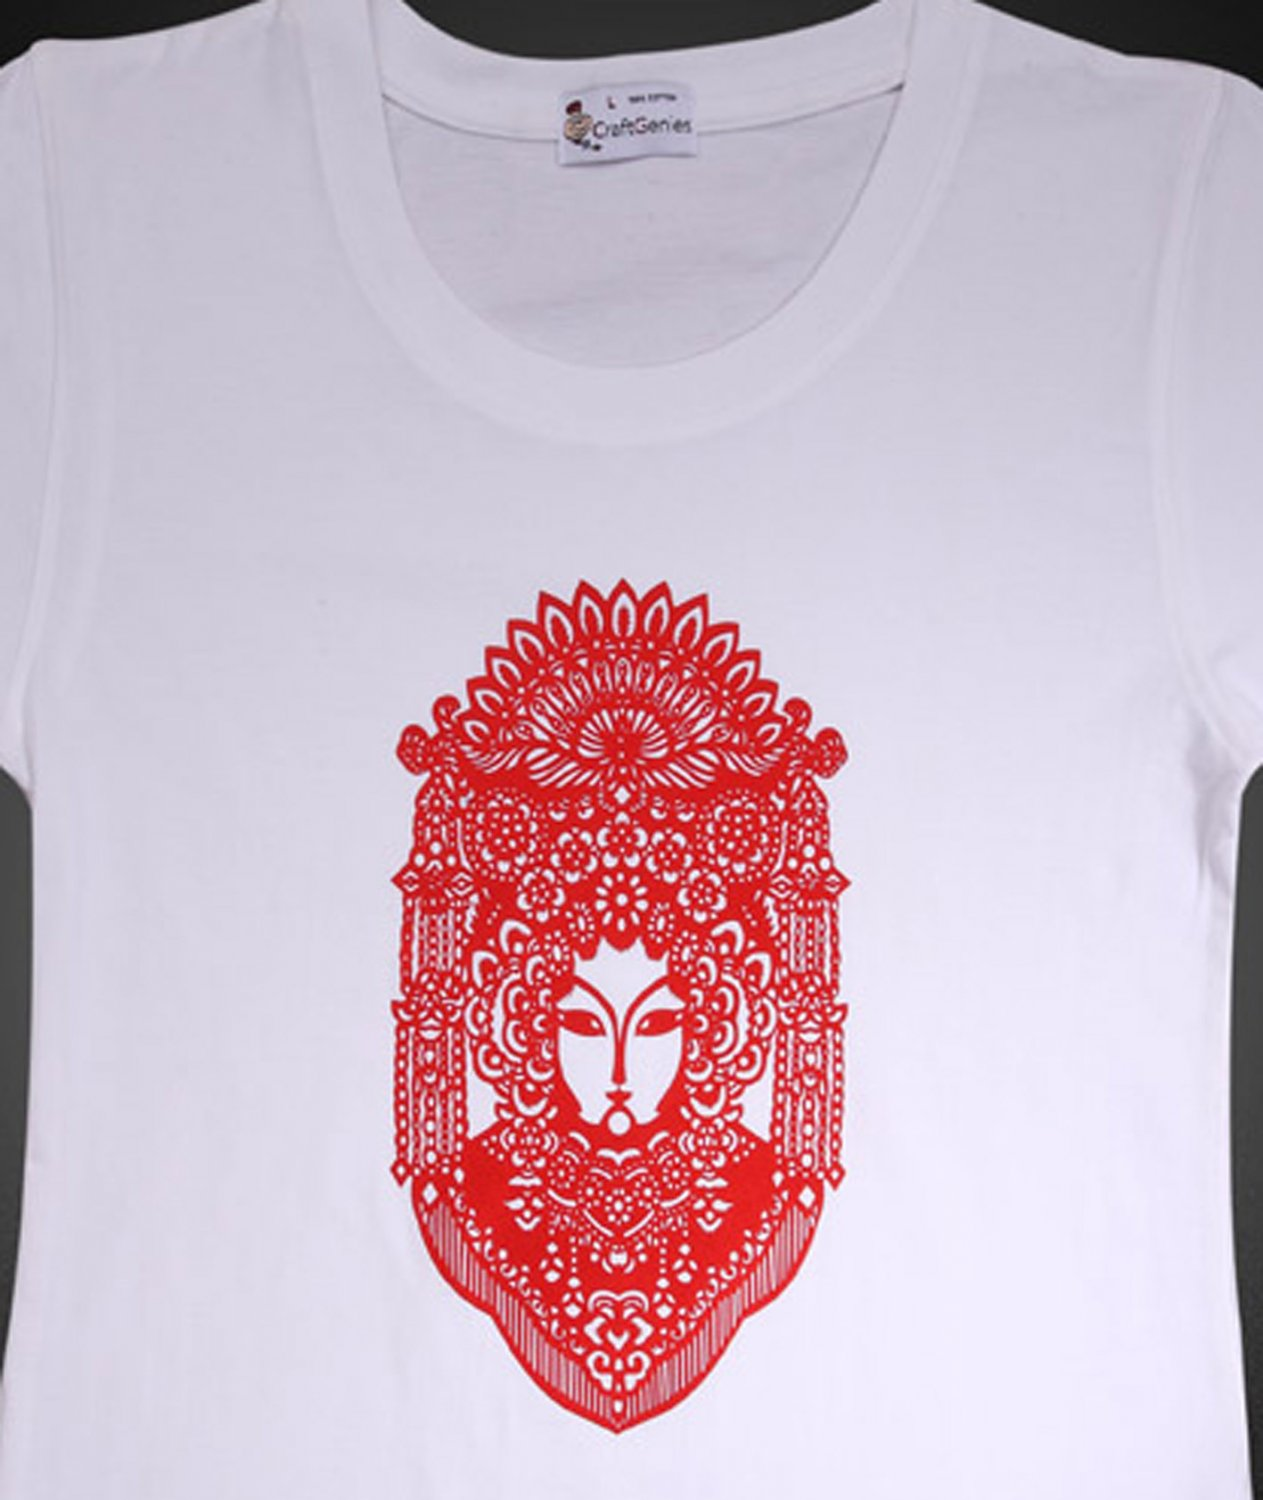 Chinese Heritage Designed T Shirt For Women - Brand New    (Women's XL)